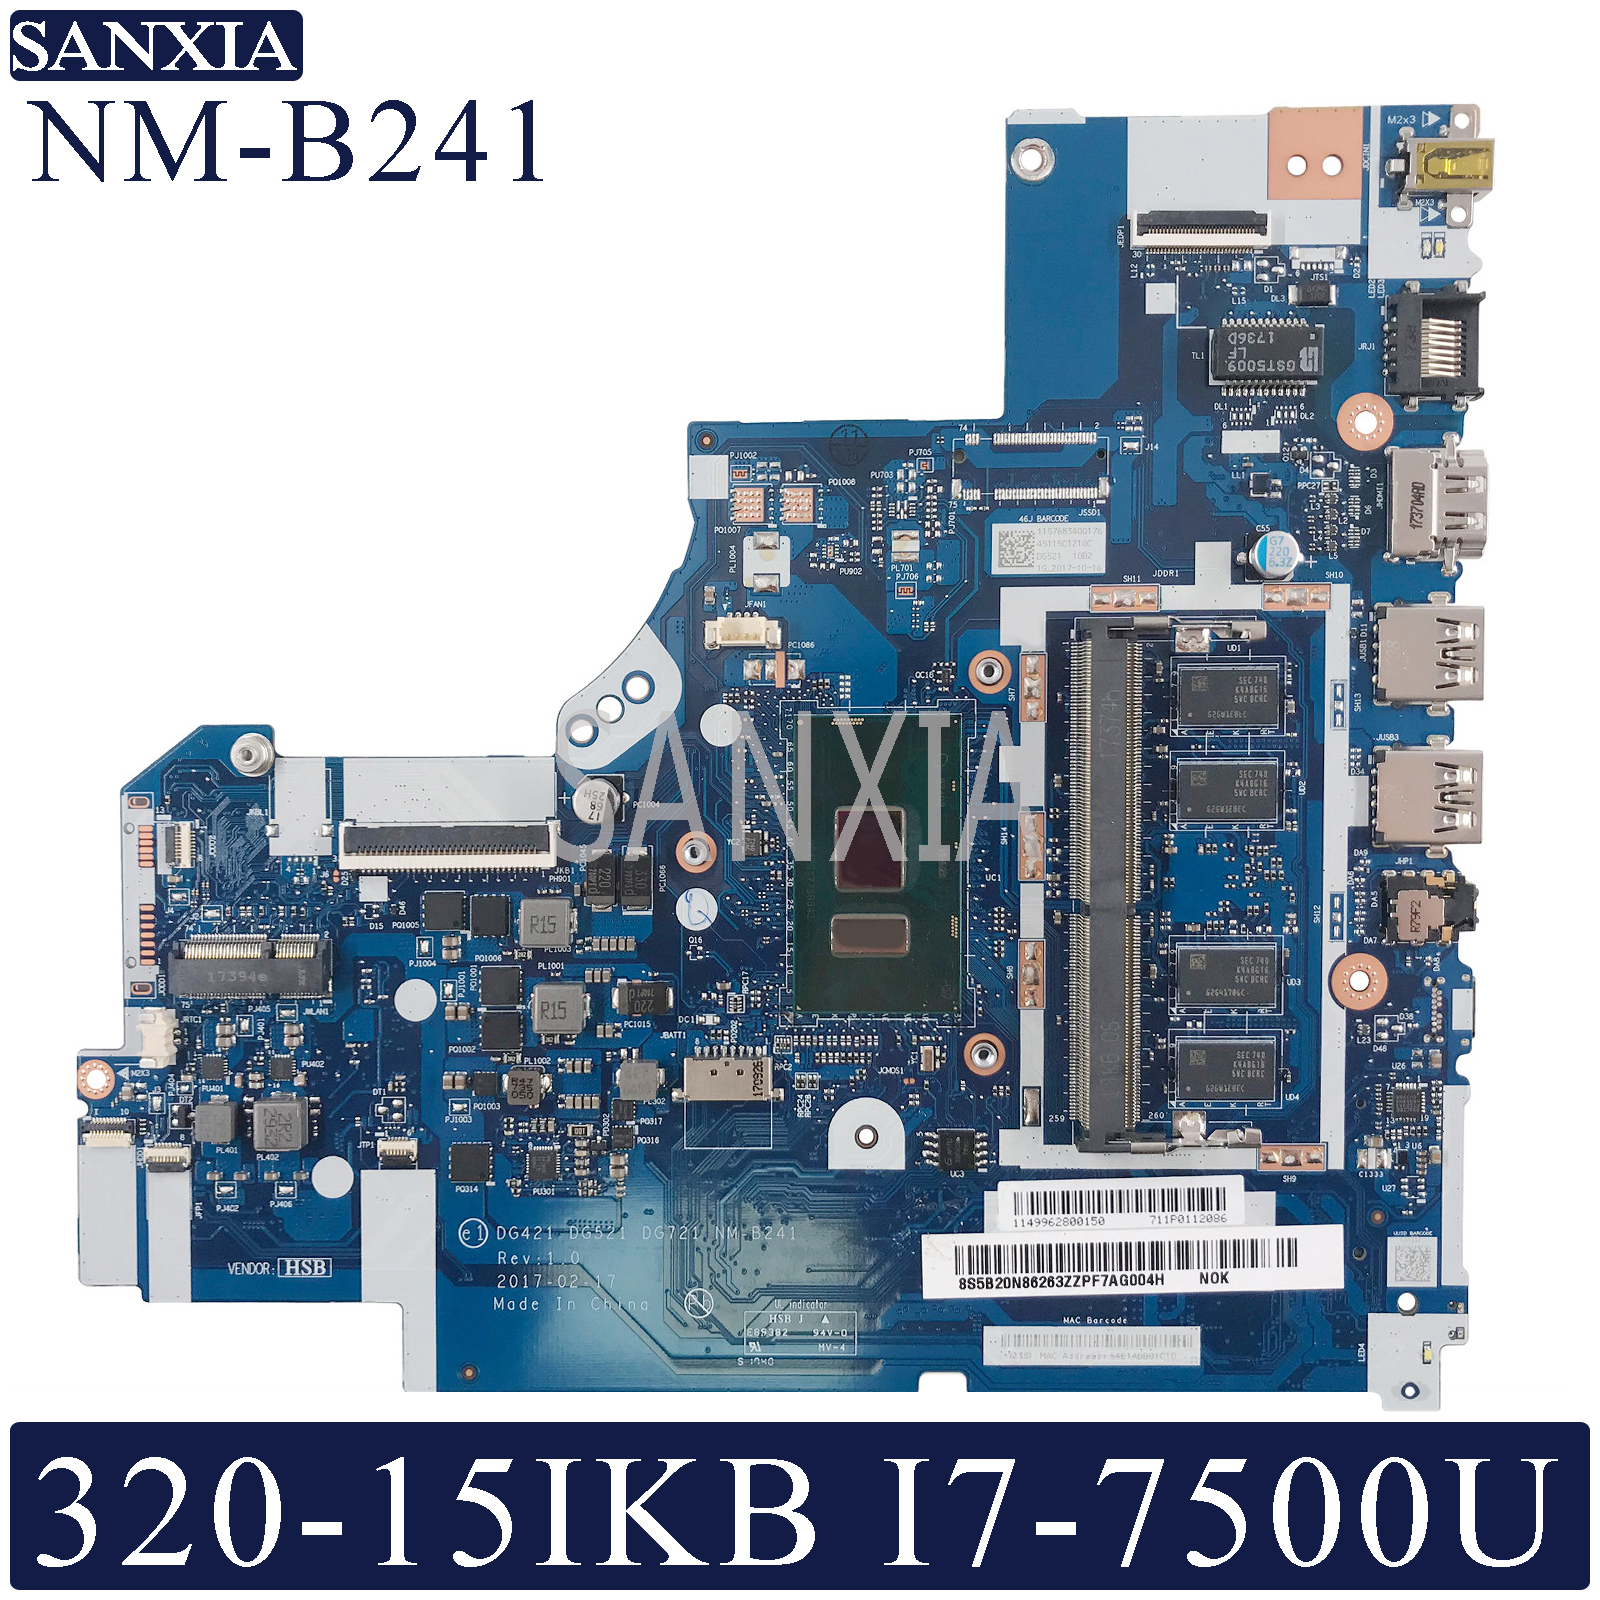 KEFU NM-B241 Laptop <font><b>motherboard</b></font> for <font><b>Lenovo</b></font> <font><b>Ideapad</b></font> <font><b>320</b></font>-15IKB original mainboard 4GB-RAM I7-7500U image